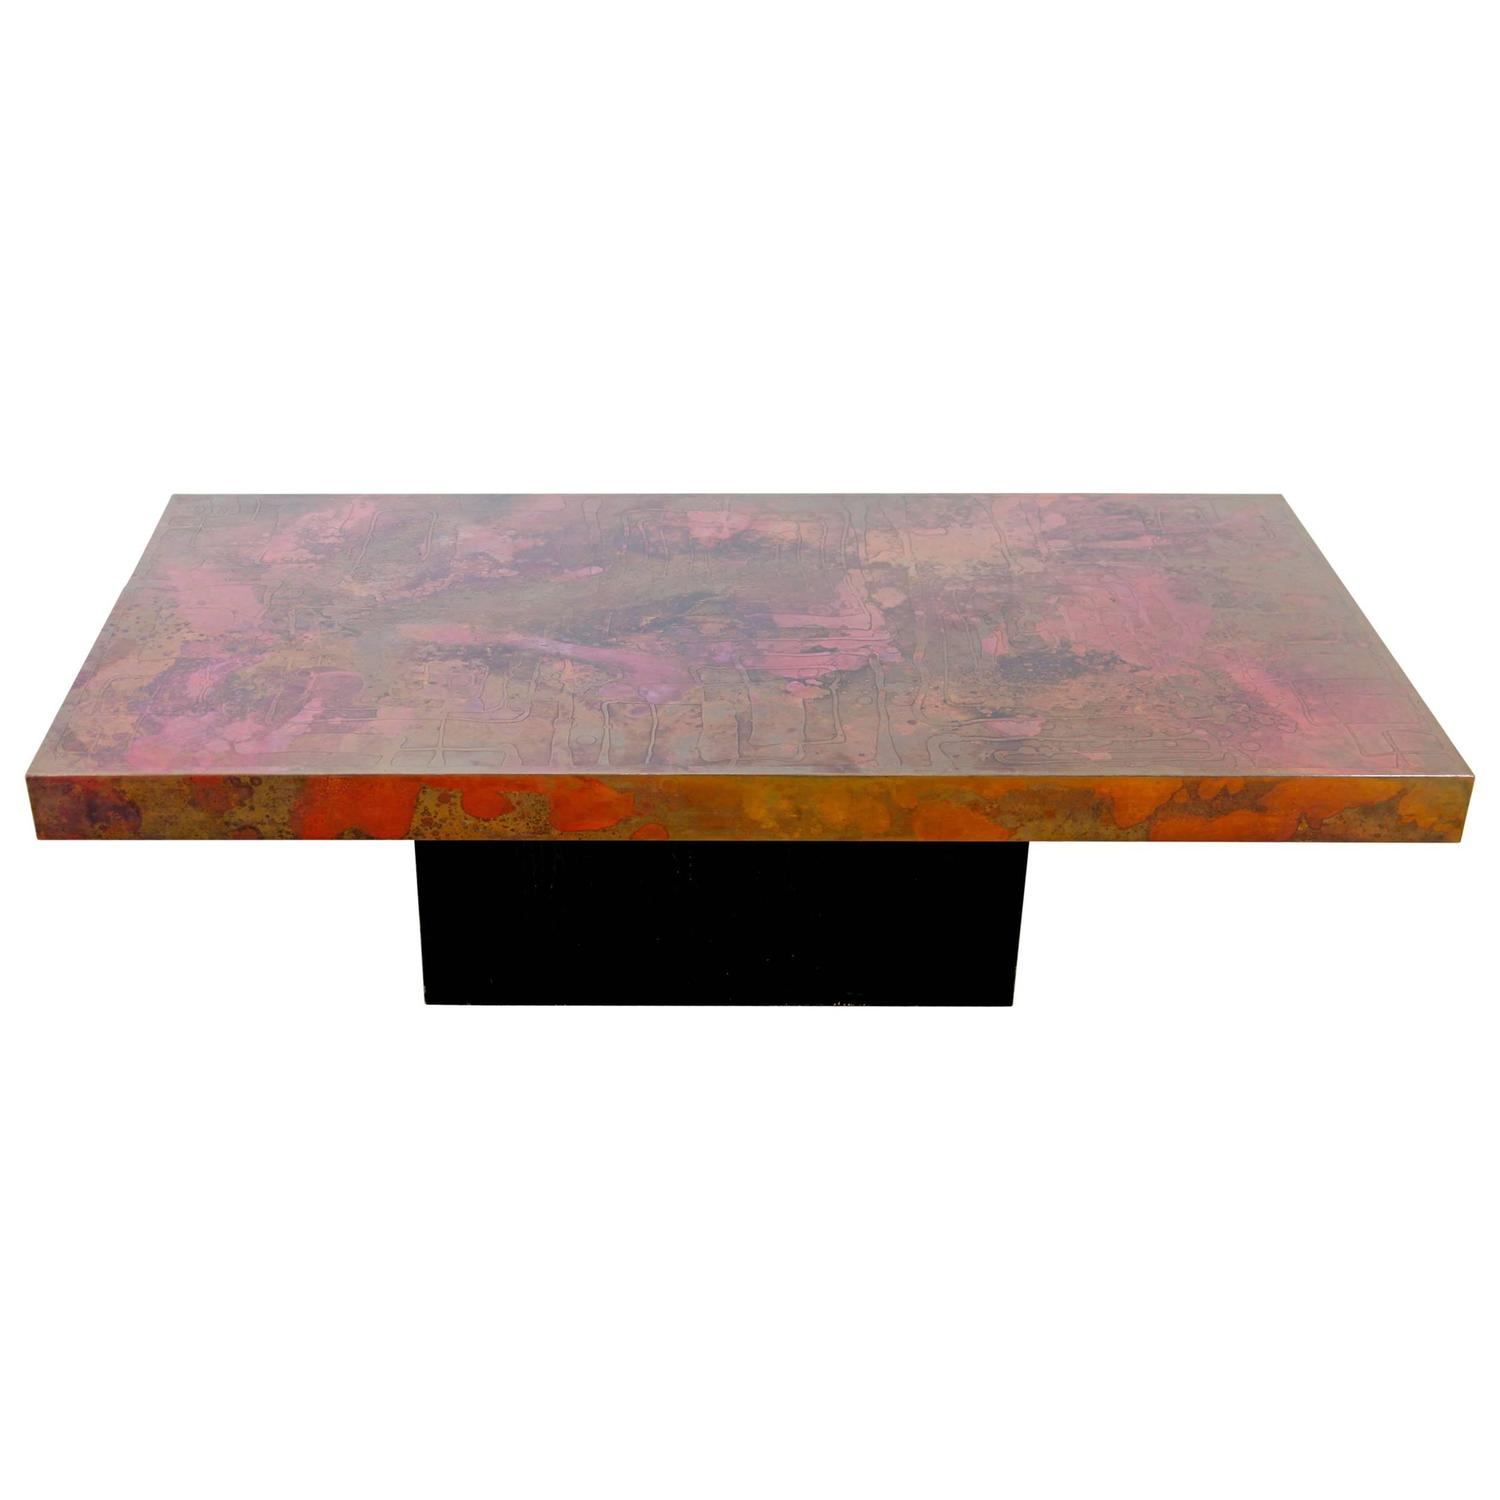 Etched and Fire Oxidized Copper Coffee Table by Bernhard Rohne